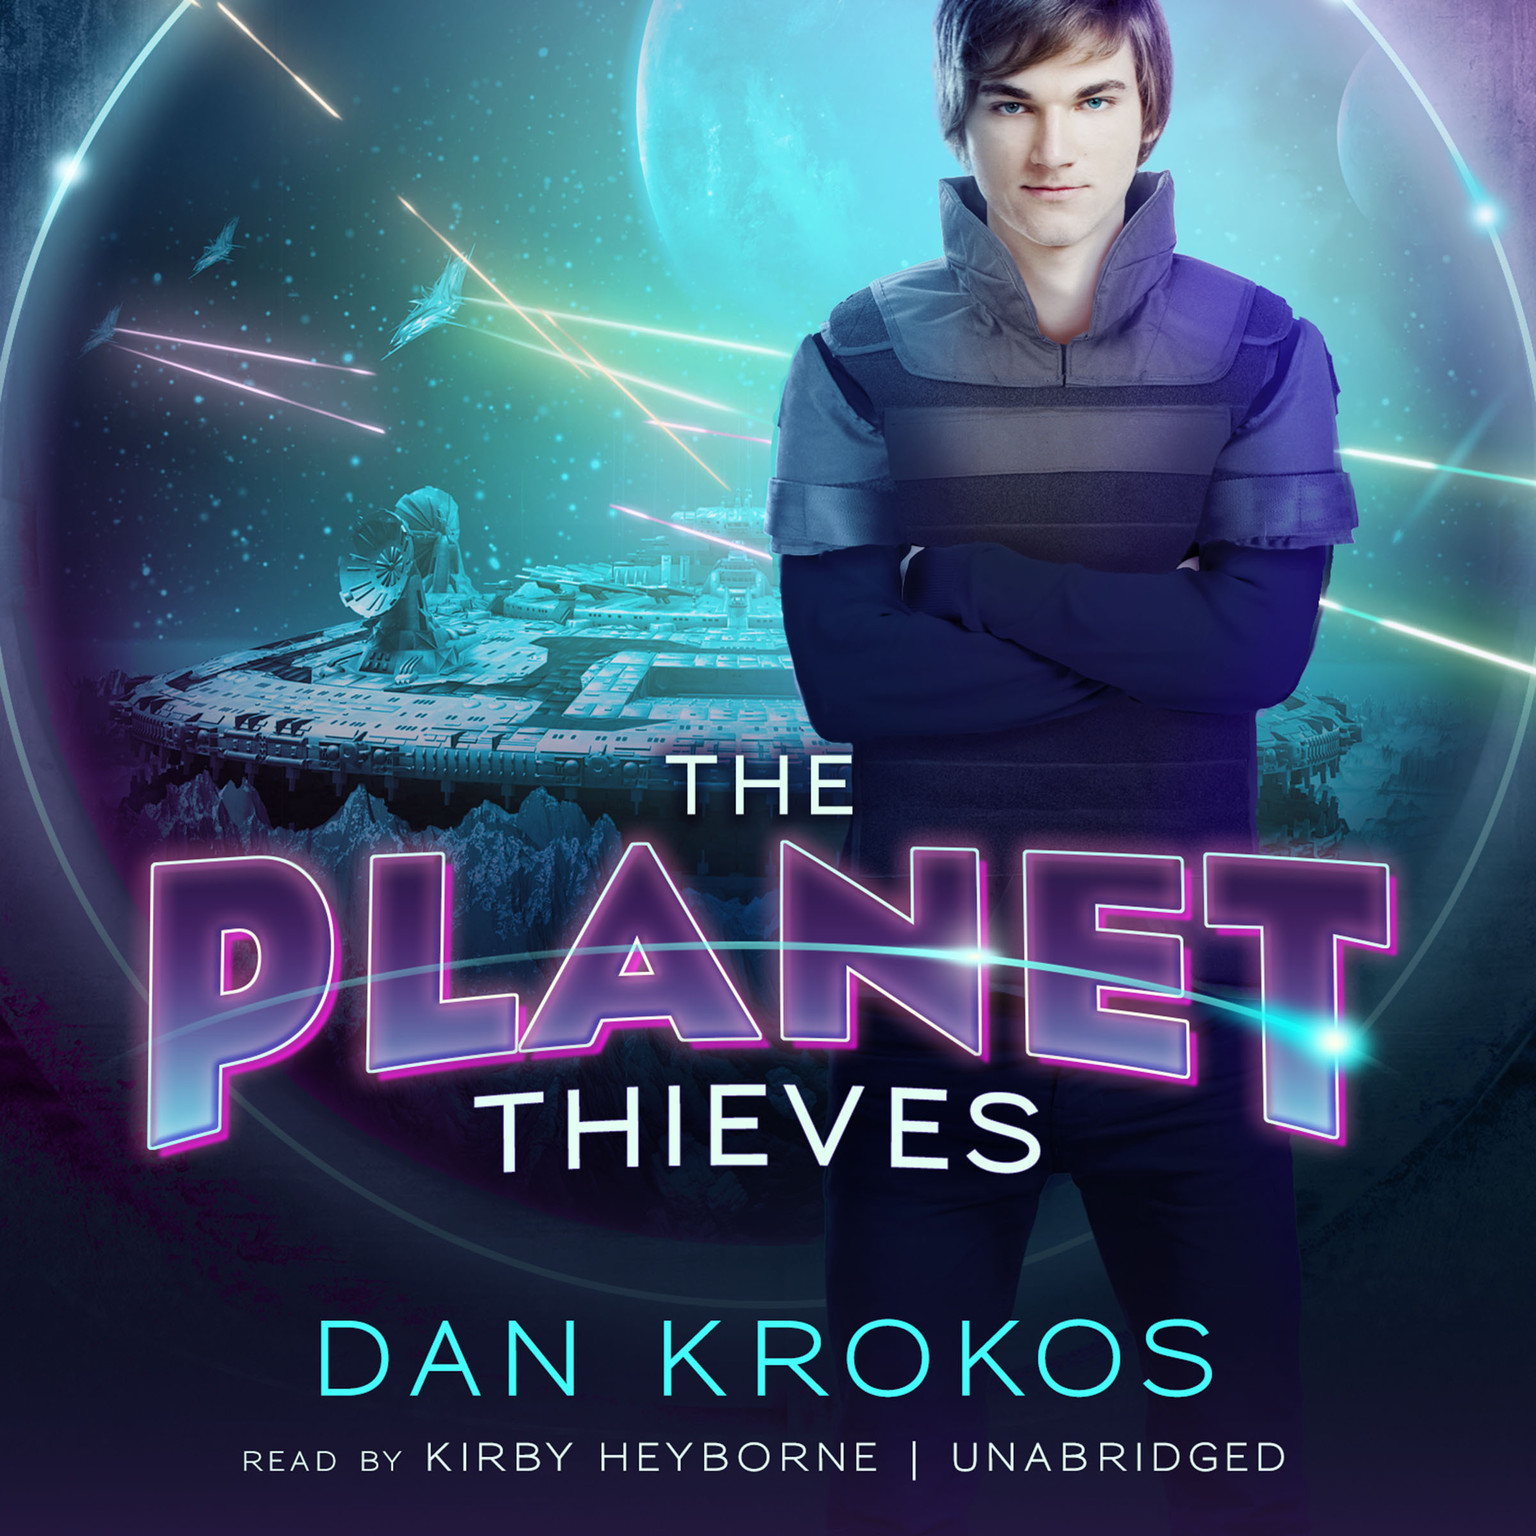 Printable The Planet Thieves Audiobook Cover Art